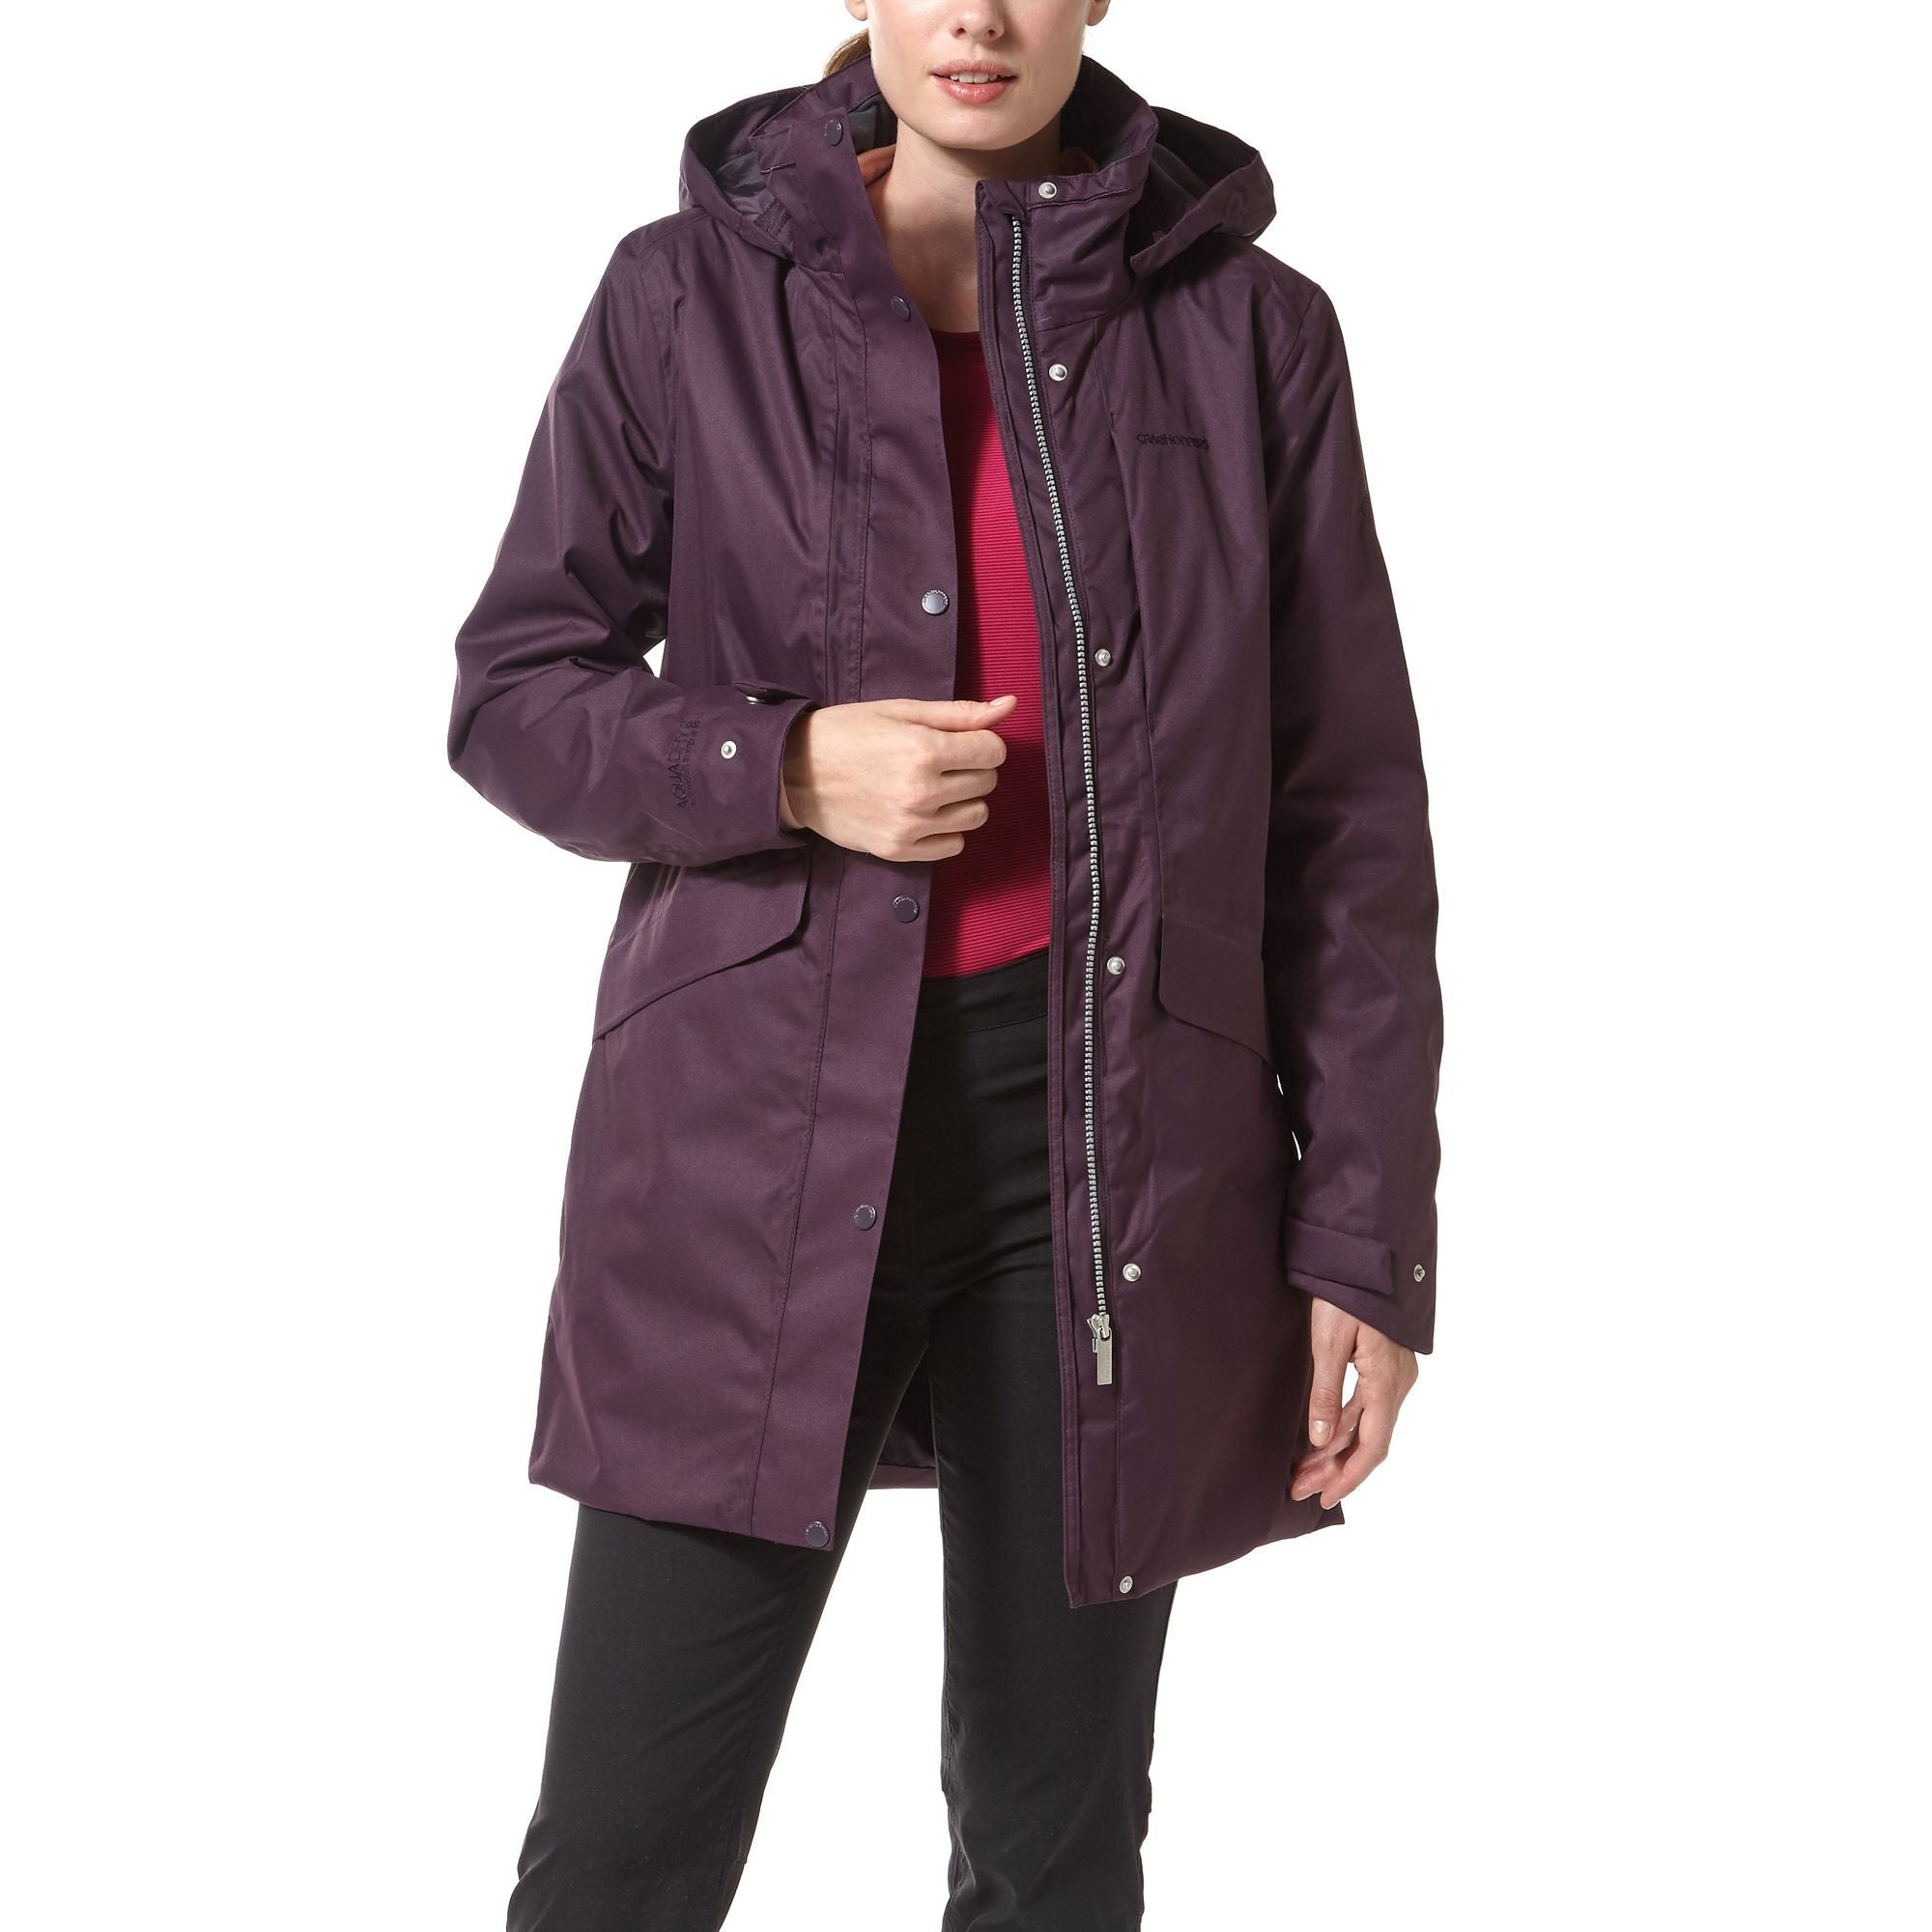 Craghoppers Aird 3 in 1 Waterproof Jacket for Ladies in Thistle